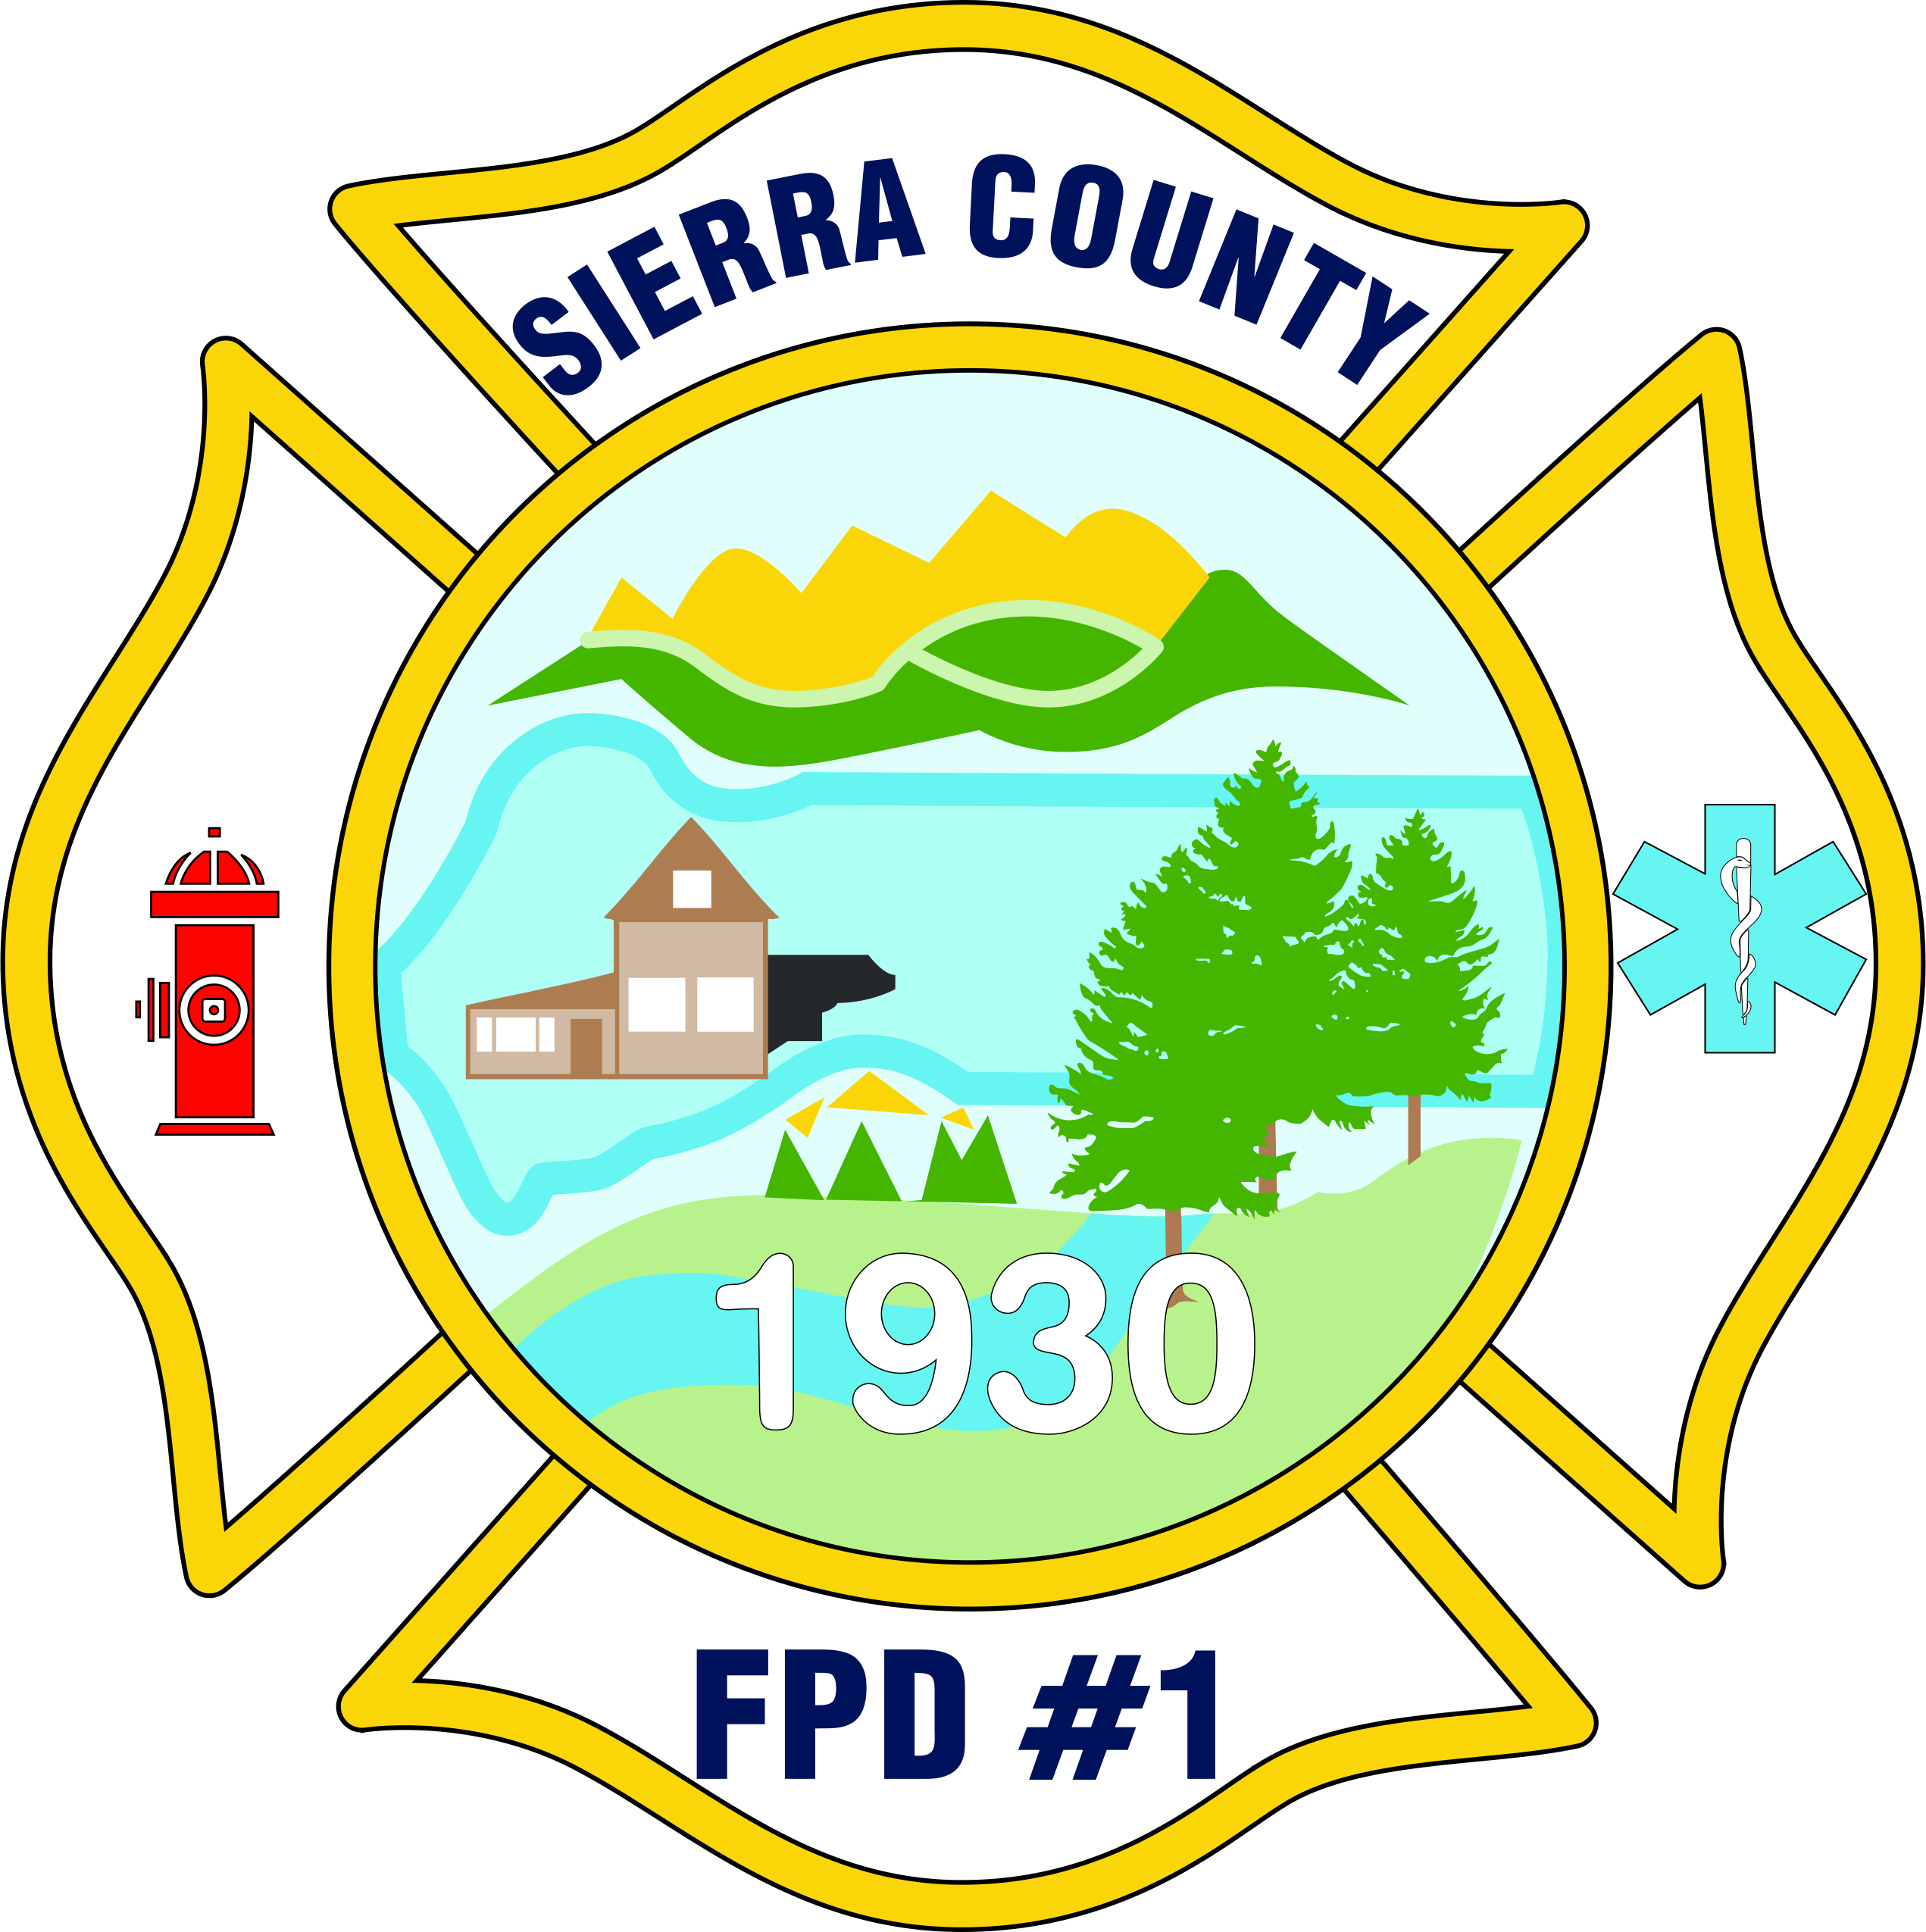 Sierra County Fire Protection District #1